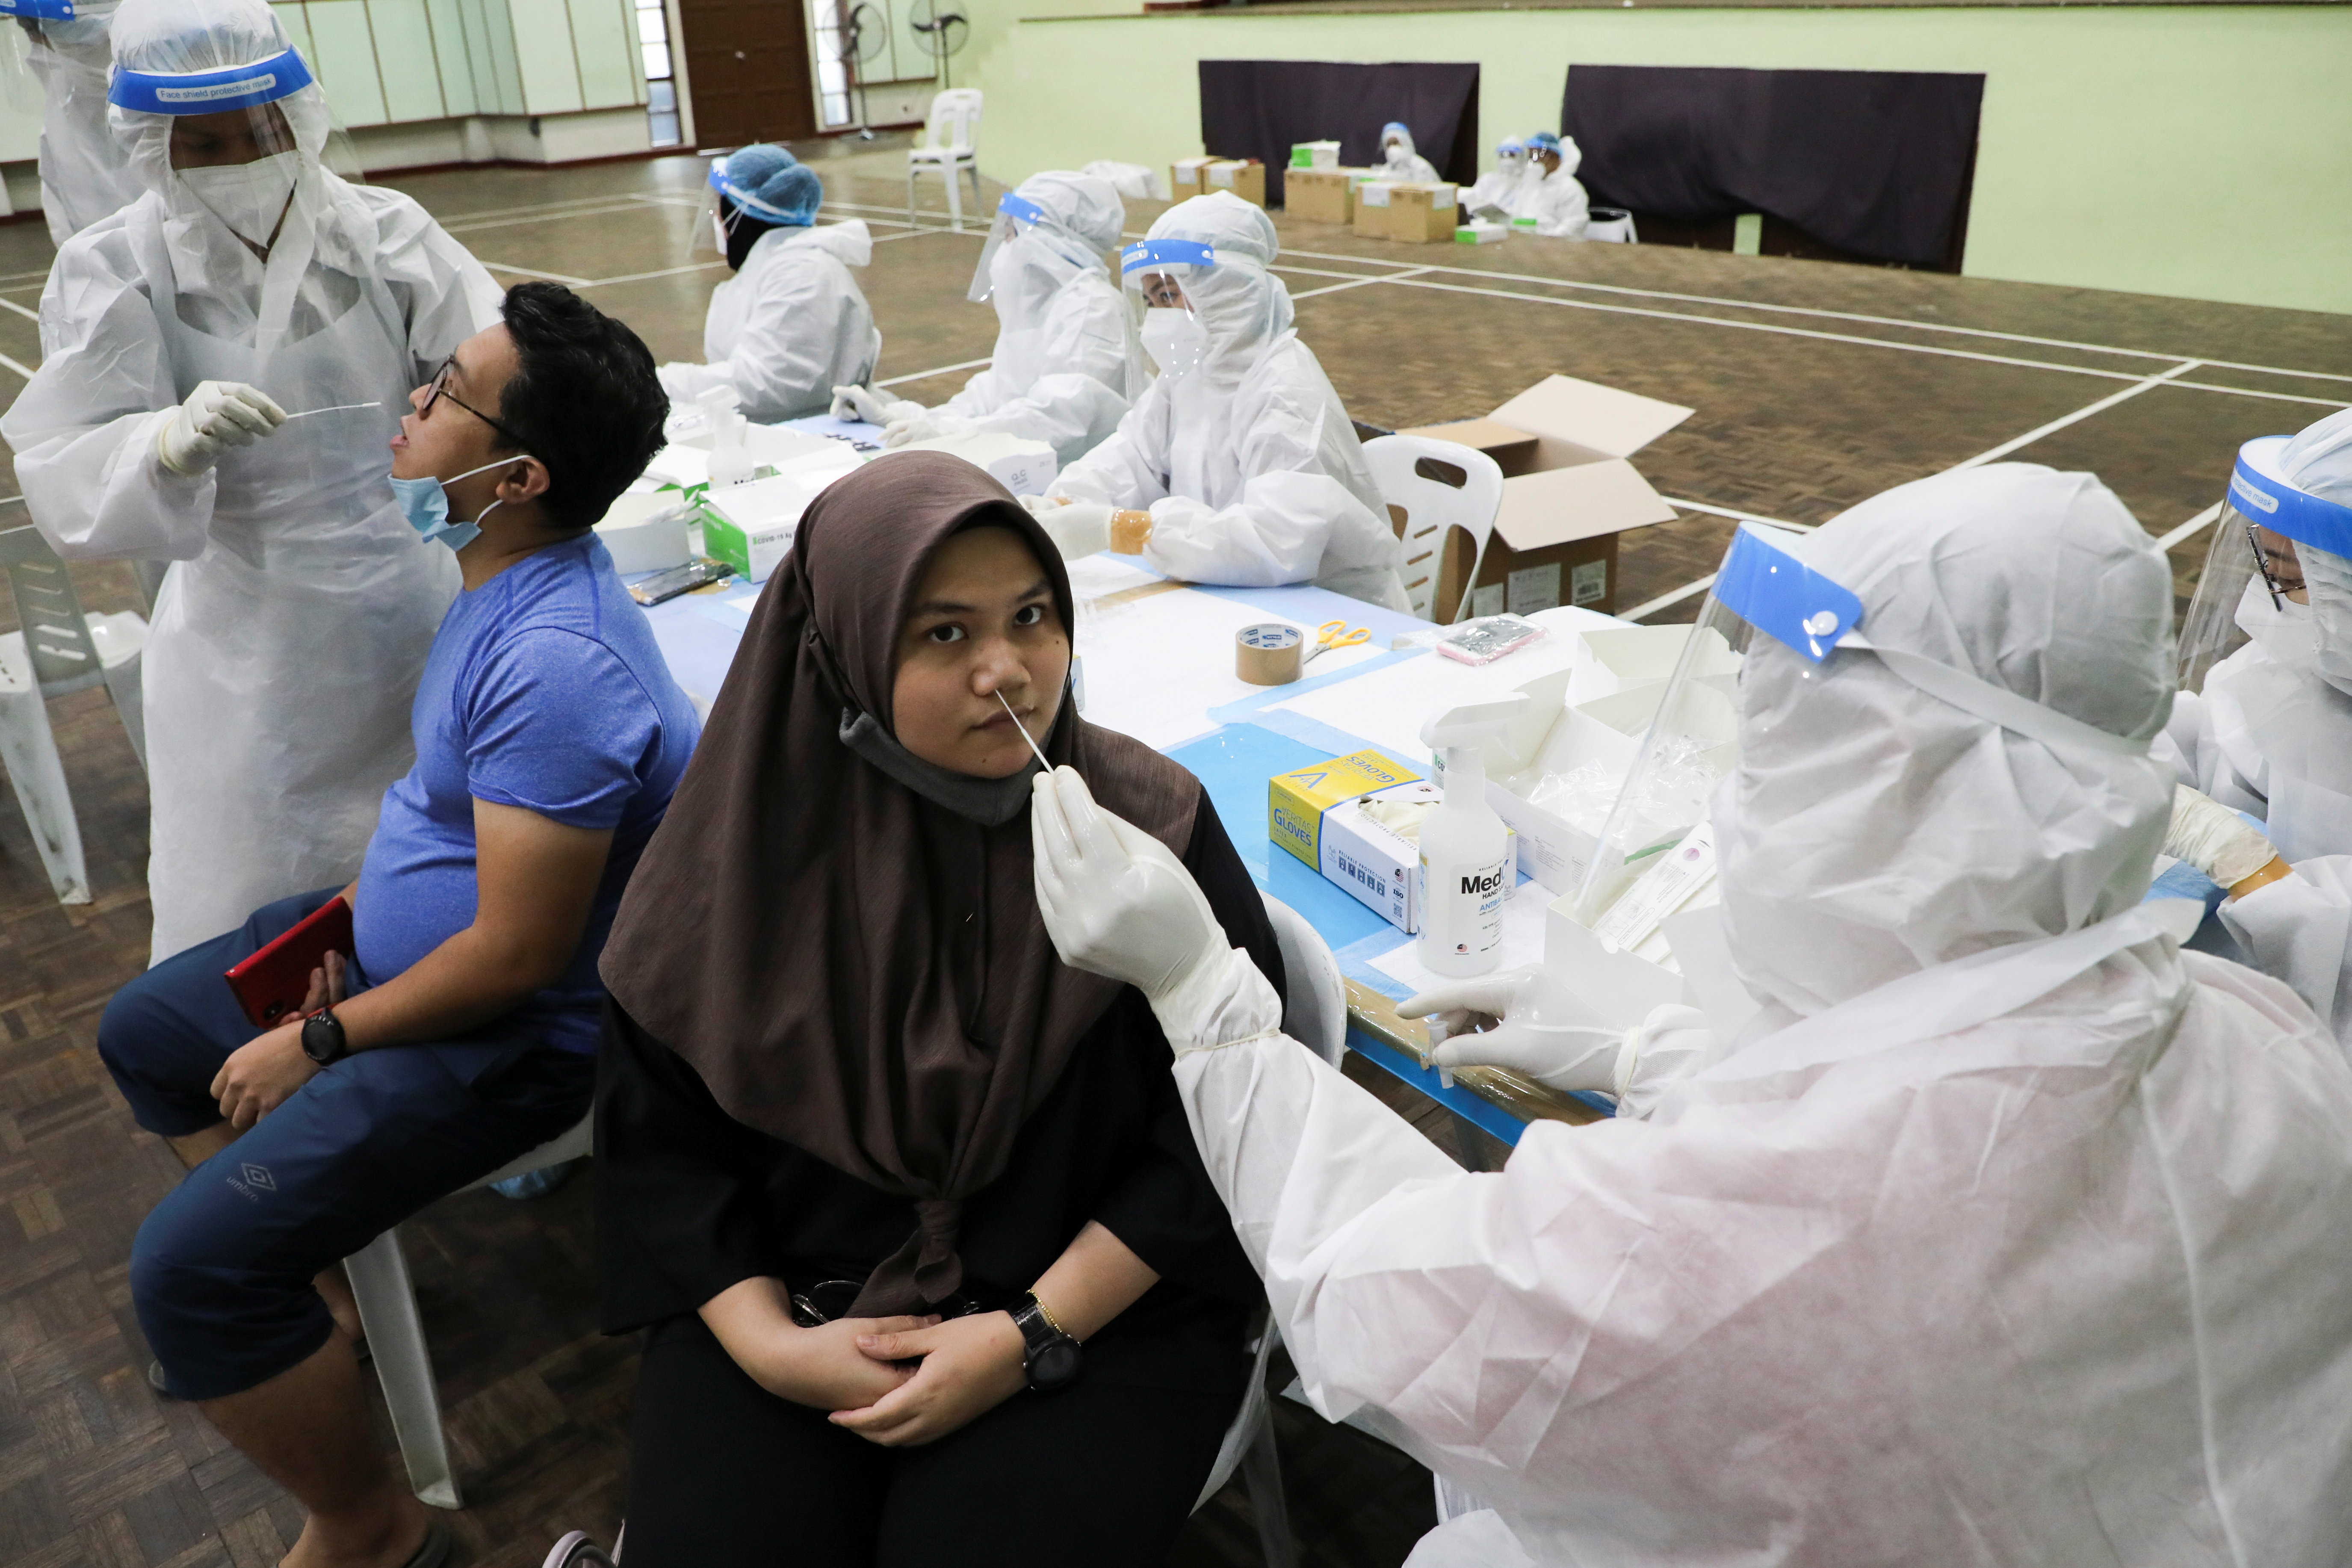 Medical workers collect swab samples from people to be tested for the coronavirus disease (COVID-19) in Kuala Lumpur, Malaysia, May 11, 2021. REUTERS/Lim Huey Teng